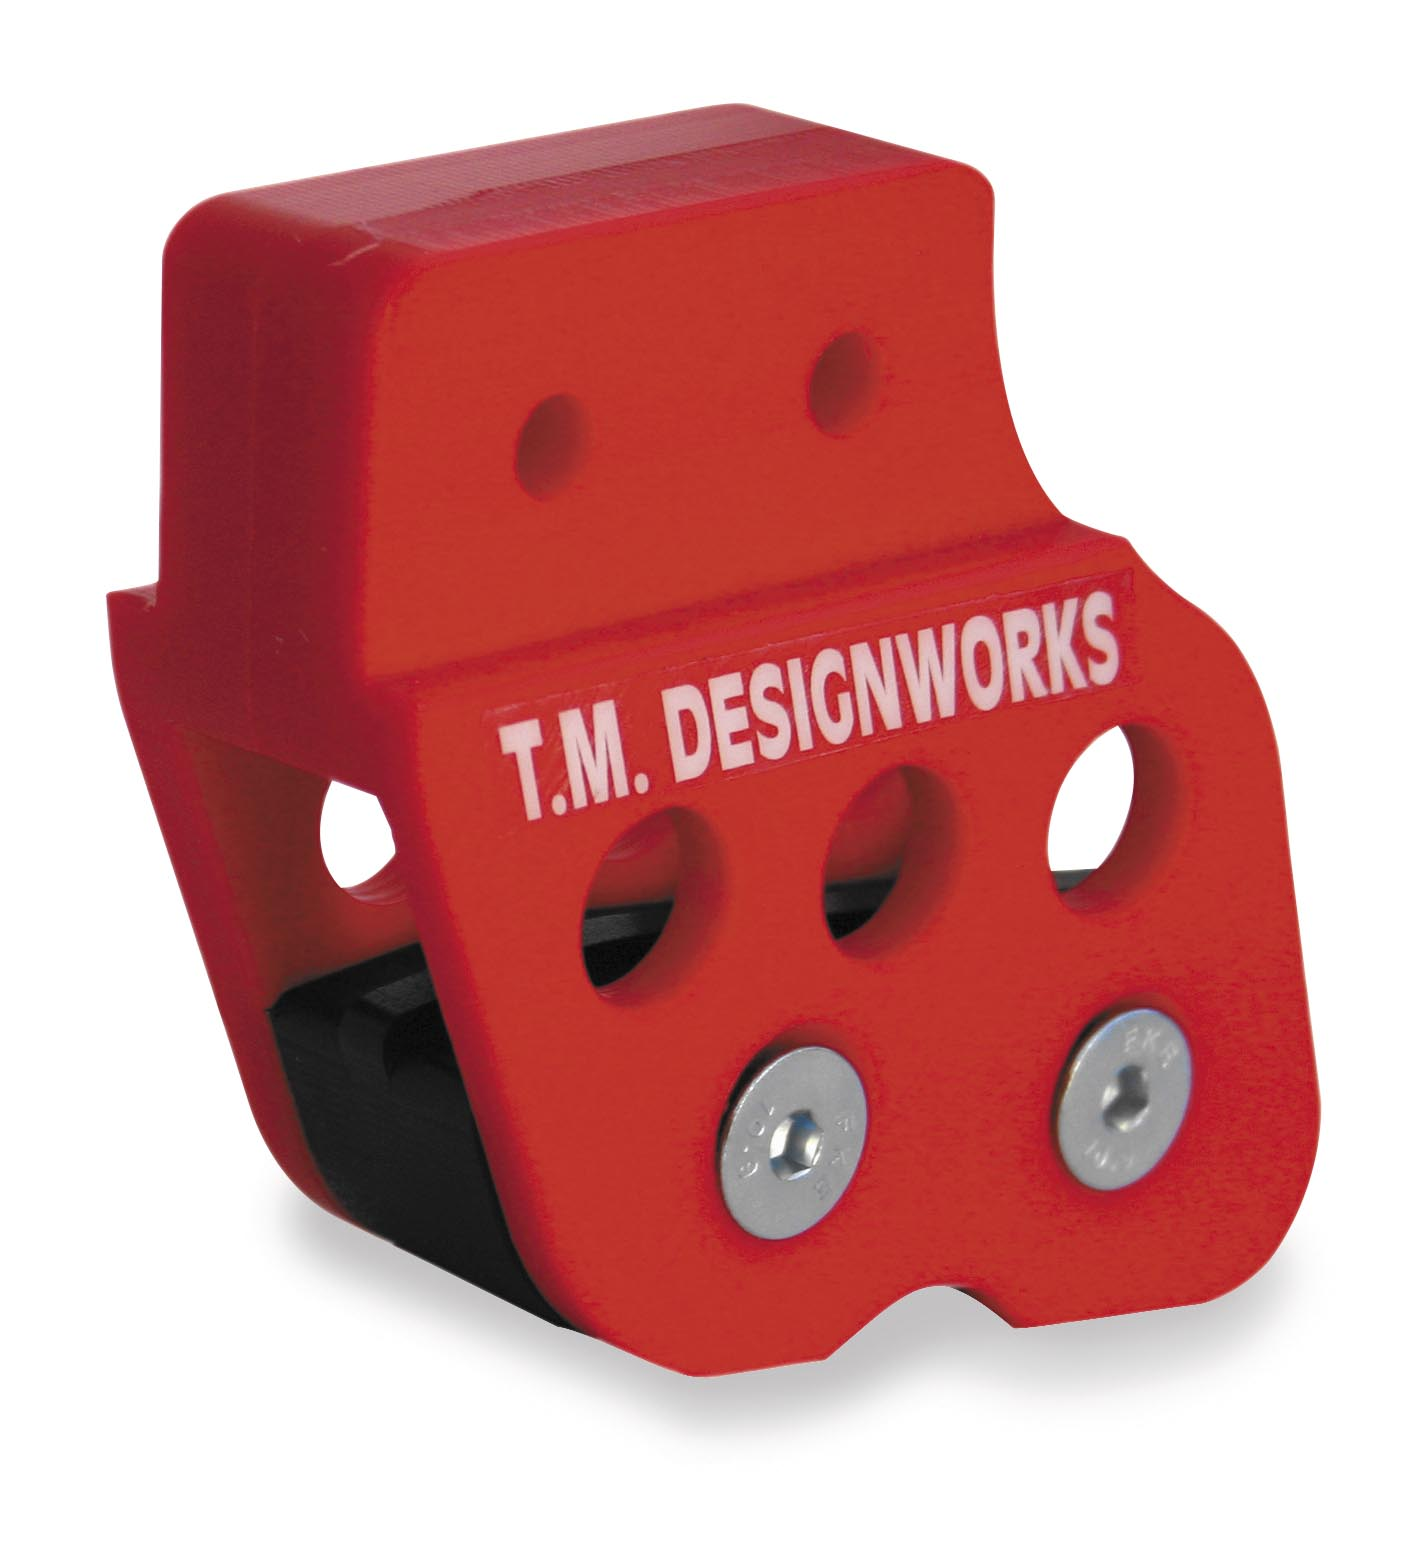 T.M. Designworks Rear Chain Guide and Solid Powerlip Wear Pad - Black